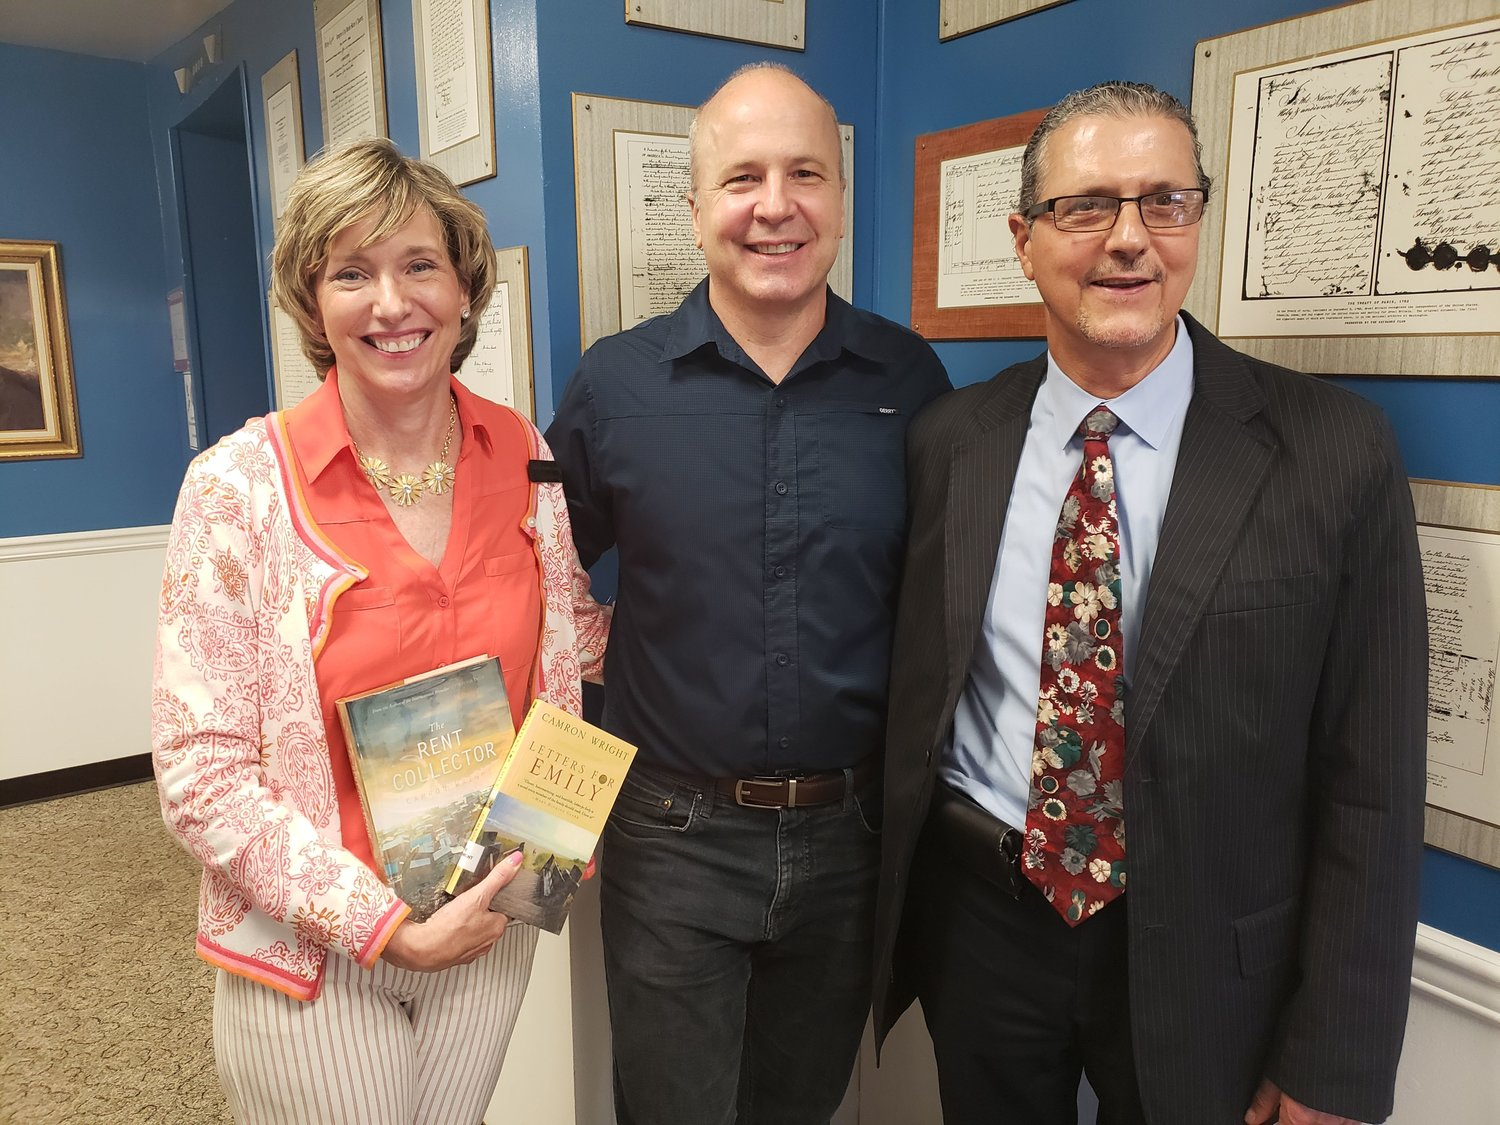 Freeport Memorial librarian Brid Halter, left, with Wright, center and Library Director Ken Bellafiore following a luncheon and discussion of his bestsellers, The Orphan Keeper and The Rent Collector.